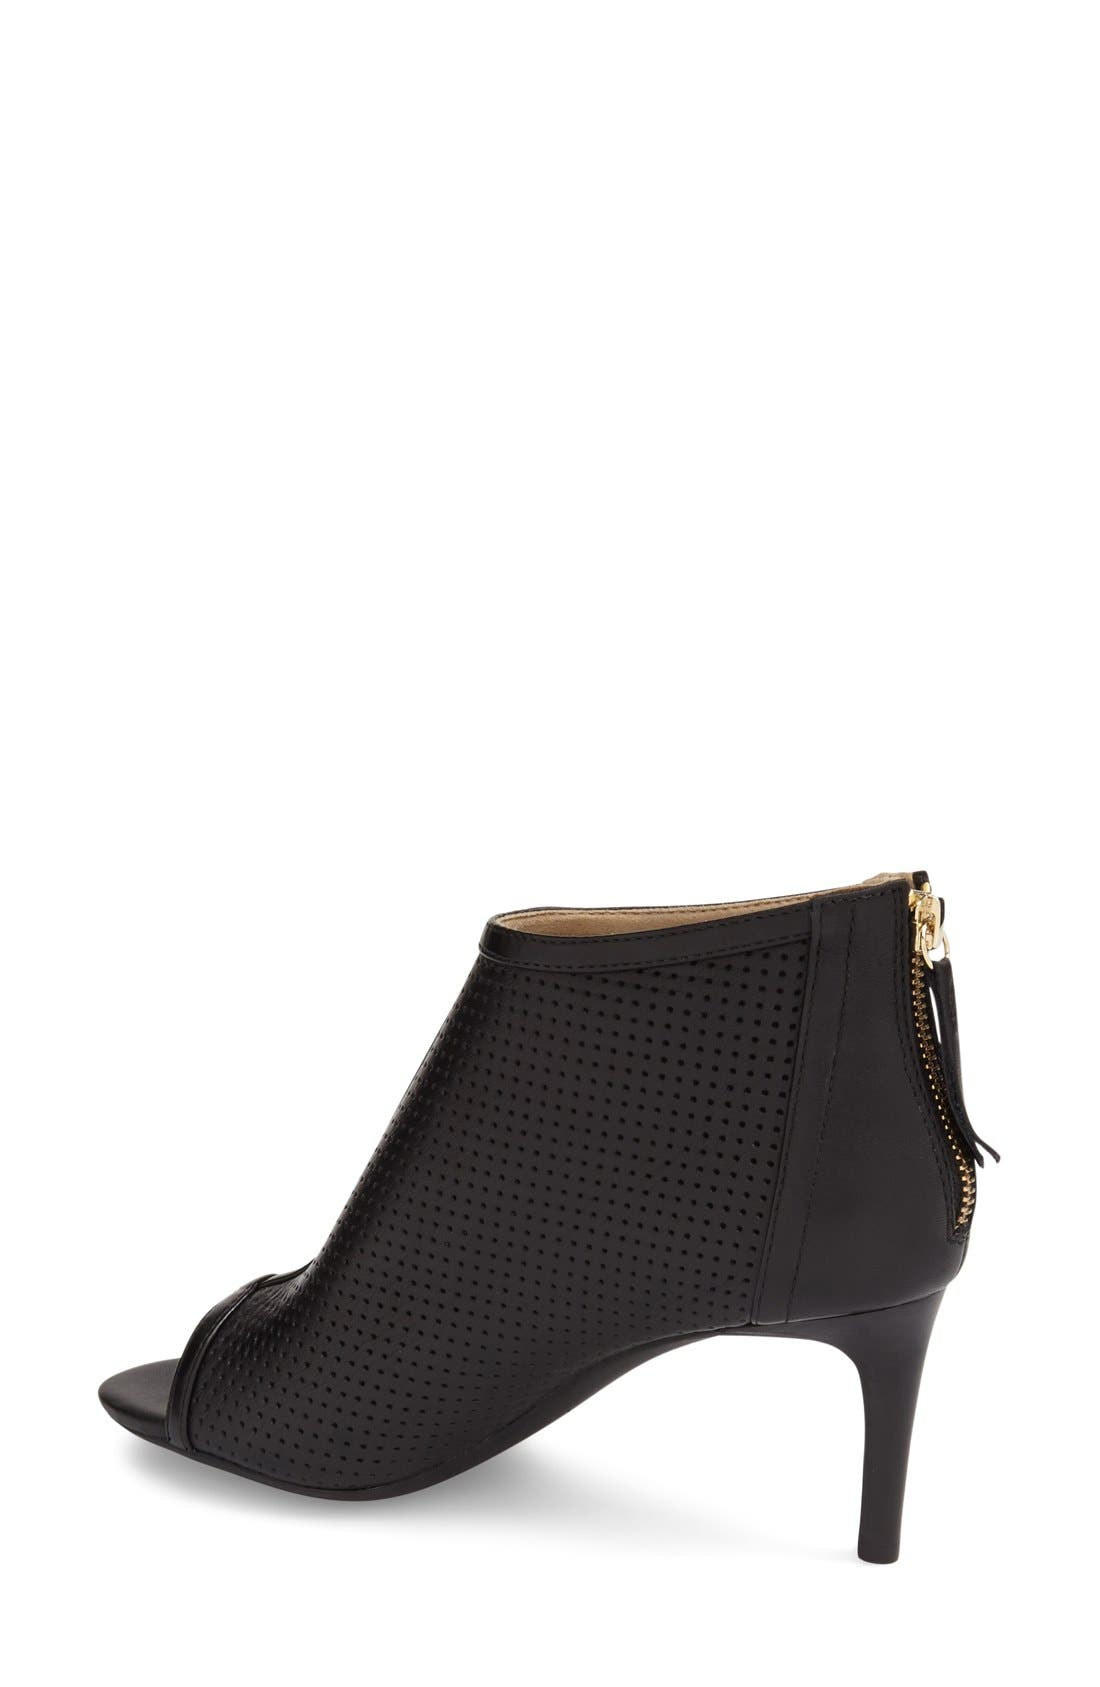 Alternate Image 2  - Geox 'Audie' Peep Toe Bootie (Women)